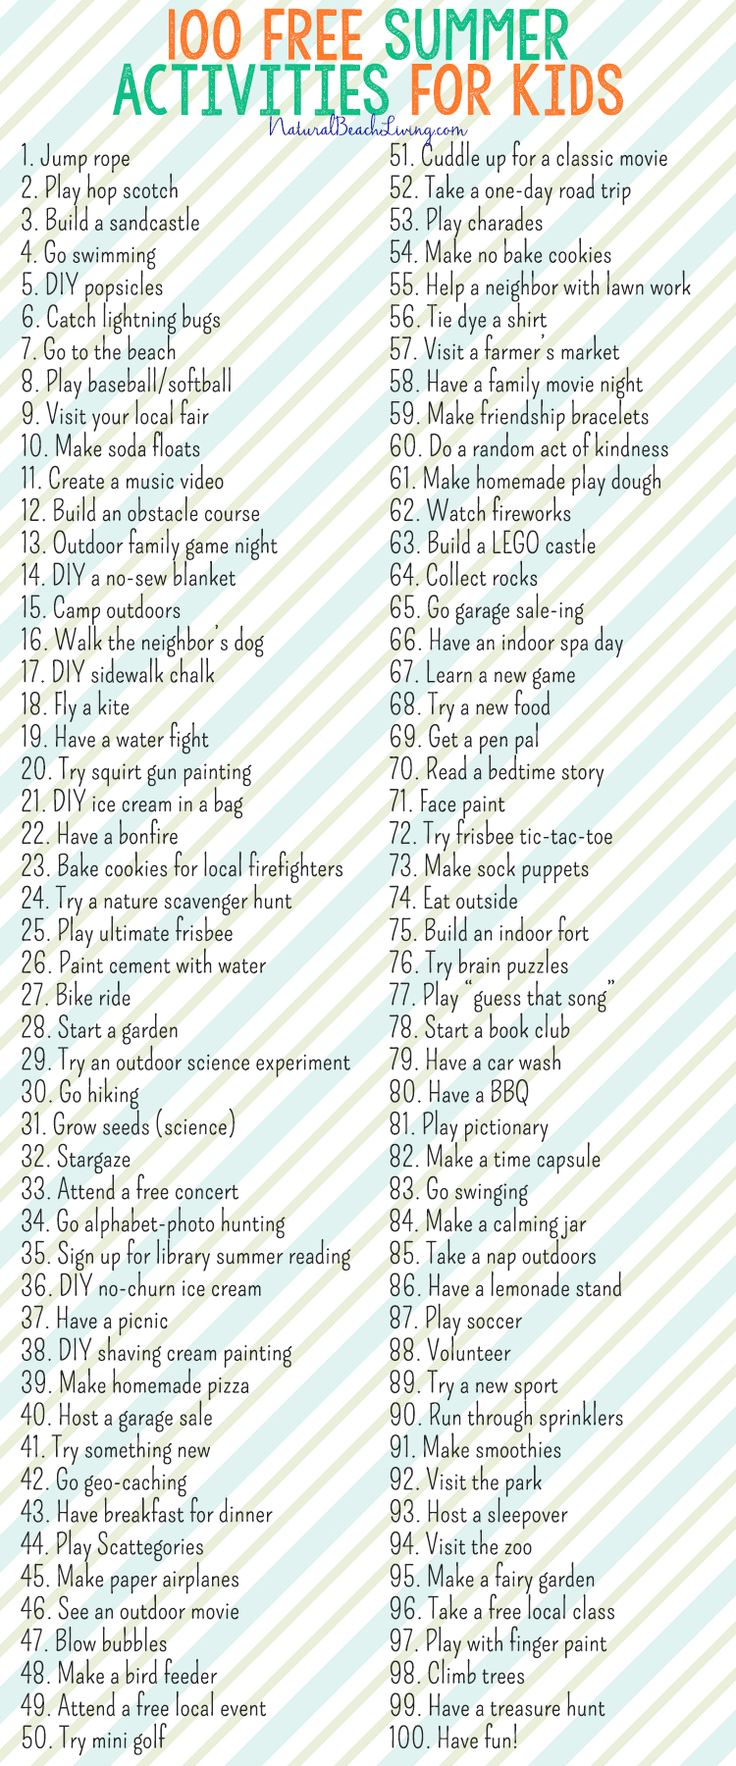 100 Free Summer Activities for Kids, Awesome List of things to do this summer! Great Ideas for Family Fun, Free Printable Summer Chart keep the family happy